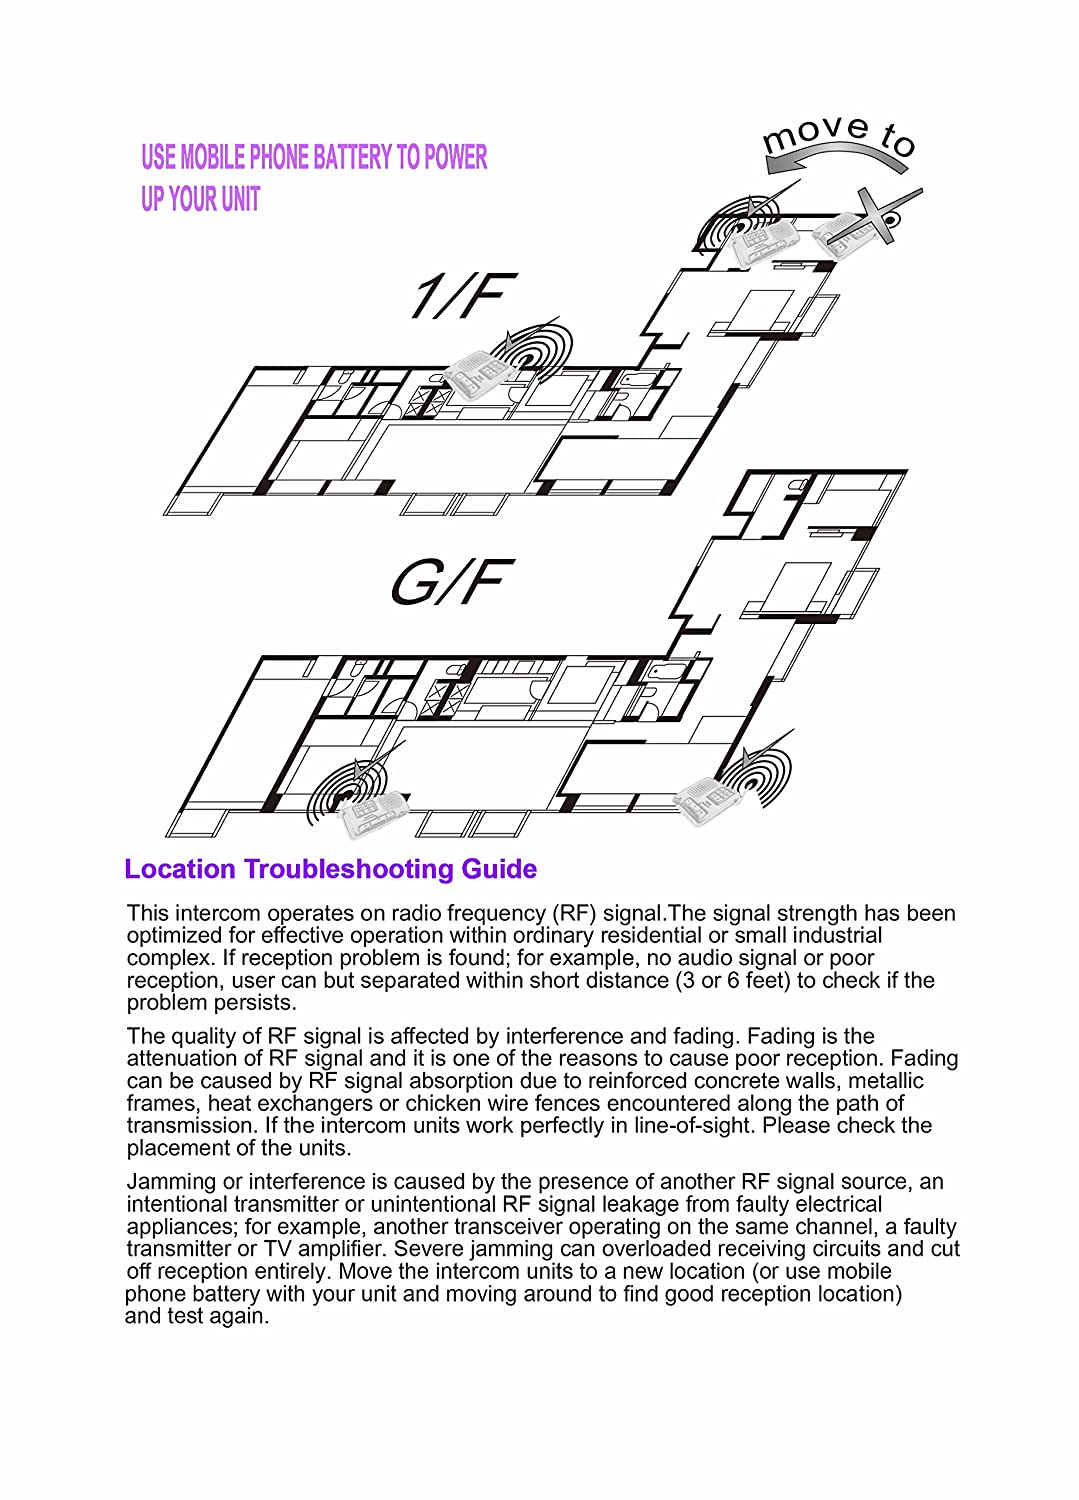 Low Cost And Simple Intercom Circuit Design Some Circuits Calford 3 Channel Wireless Voice System For Office Home Shop Greyish White Pack Of Stations 688 Improvement